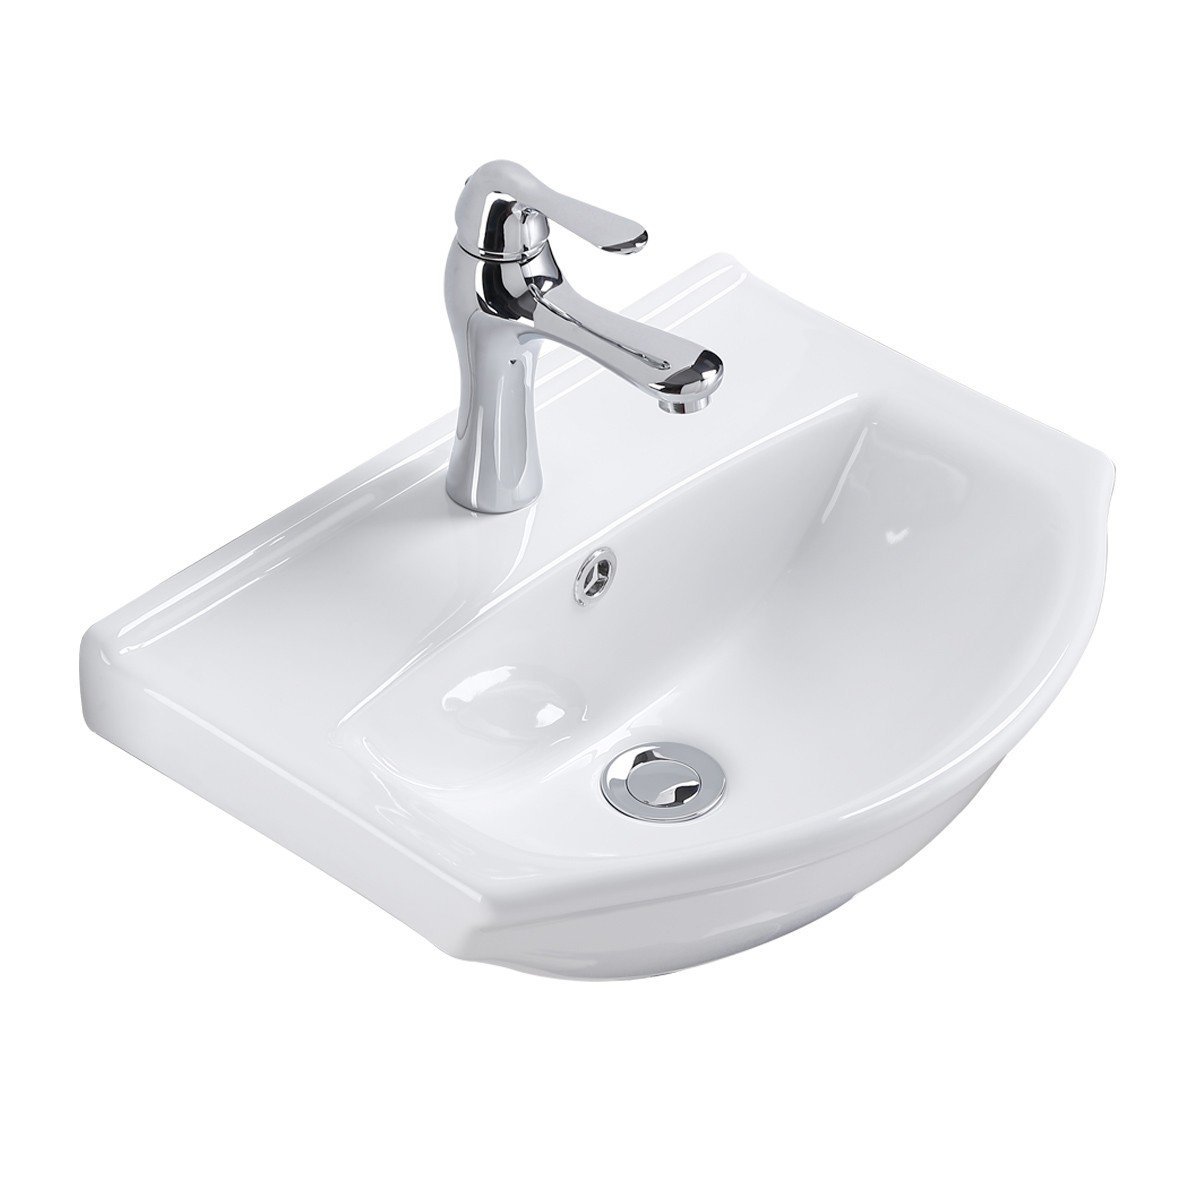 Small Wall Mount Vessel Sink White Vitreous China Offset Space Saver Overflow | Renovator's Supply